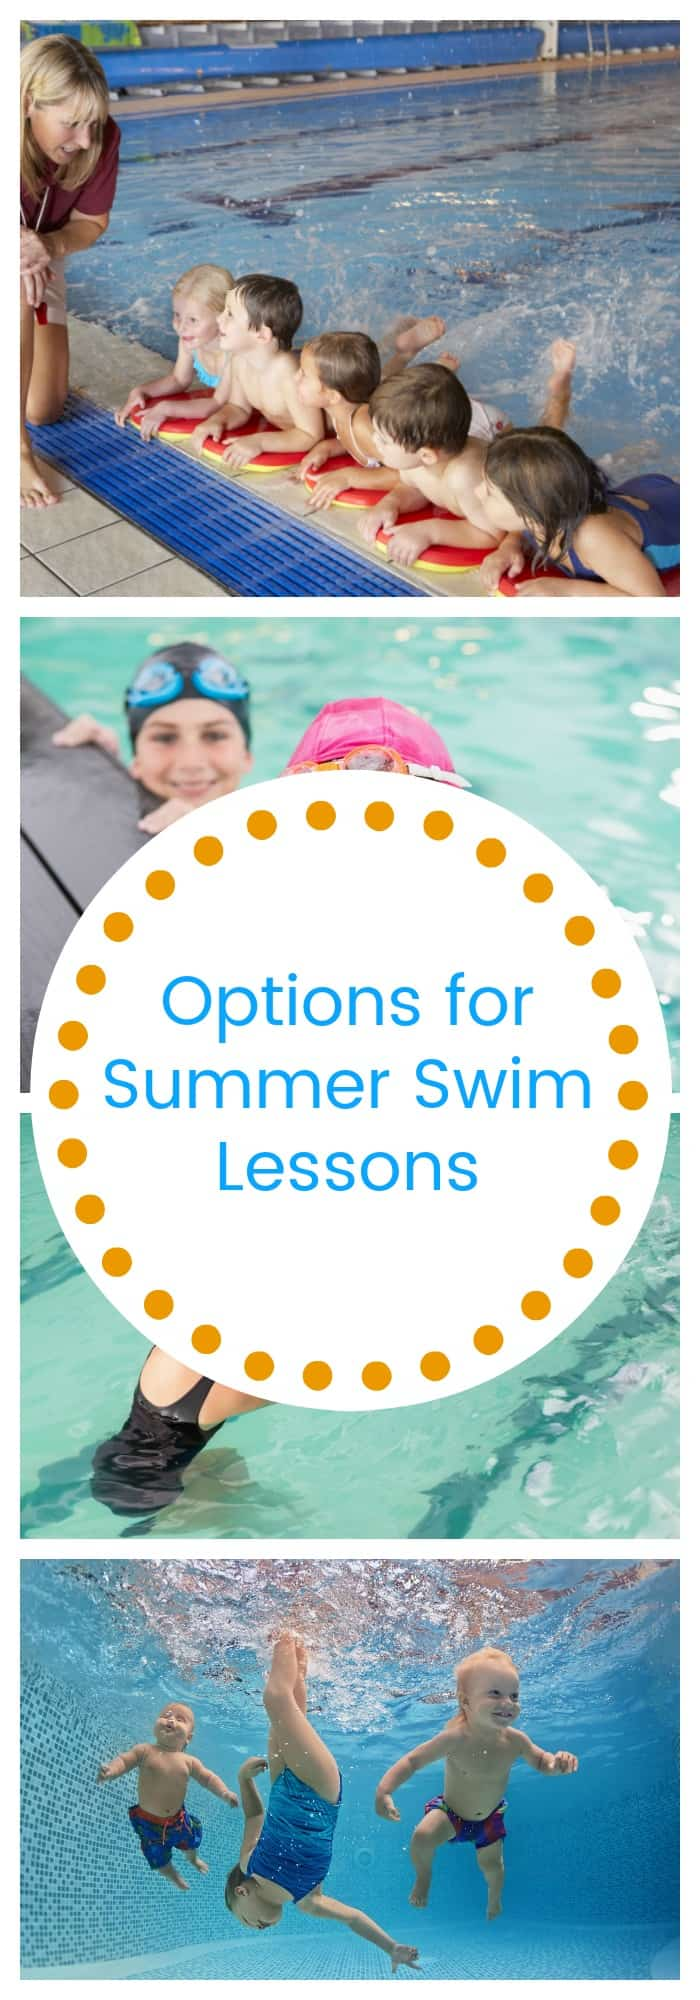 Options for Summer Swim Lessons